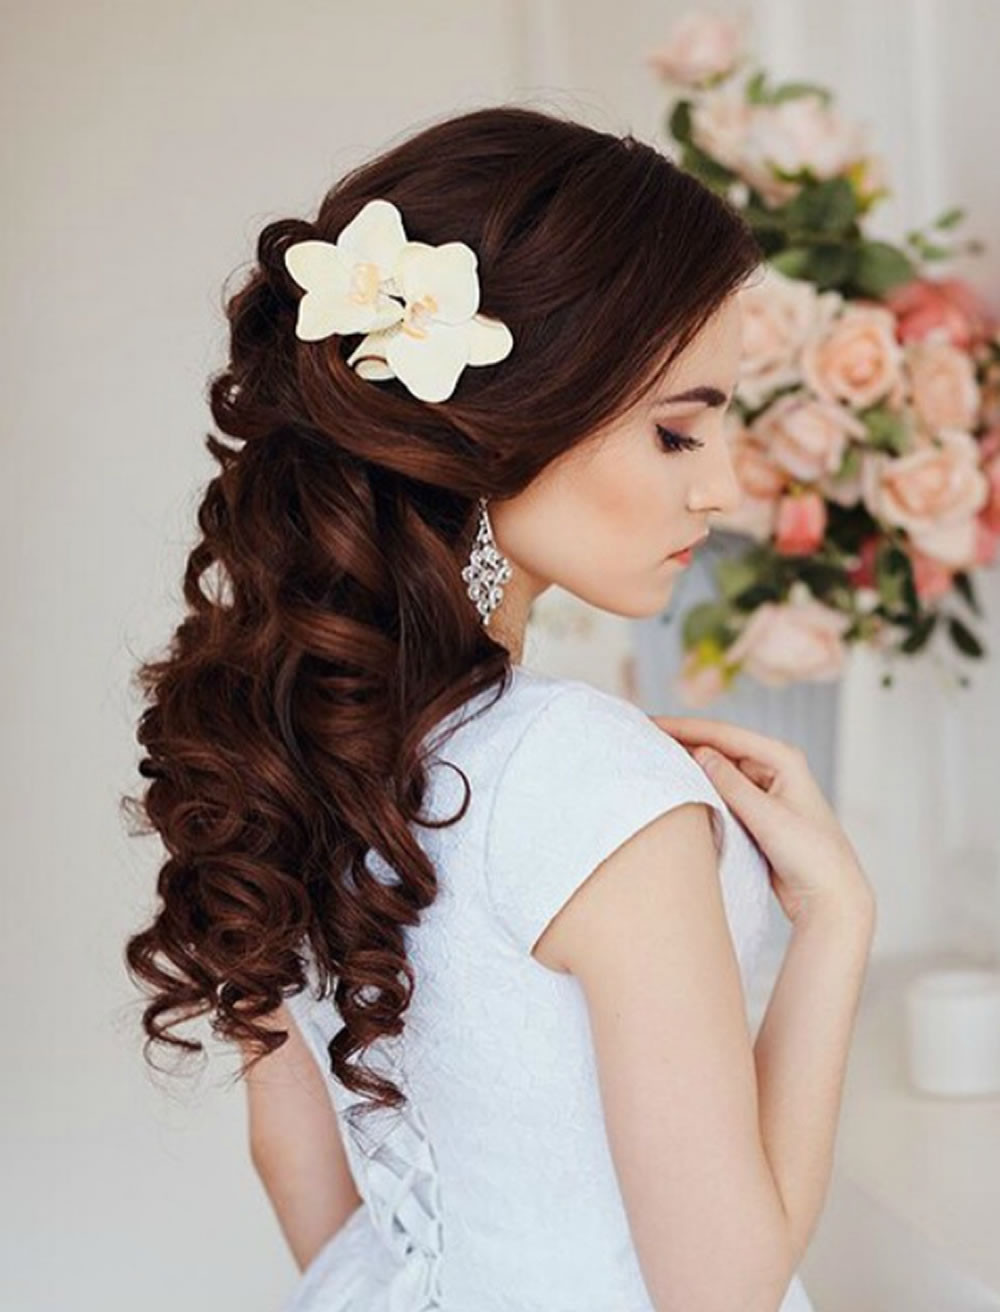 Hairstyle For Bridesmaid 2019  Very Stylish Wedding Hairstyles for Long Hair 2018 2019